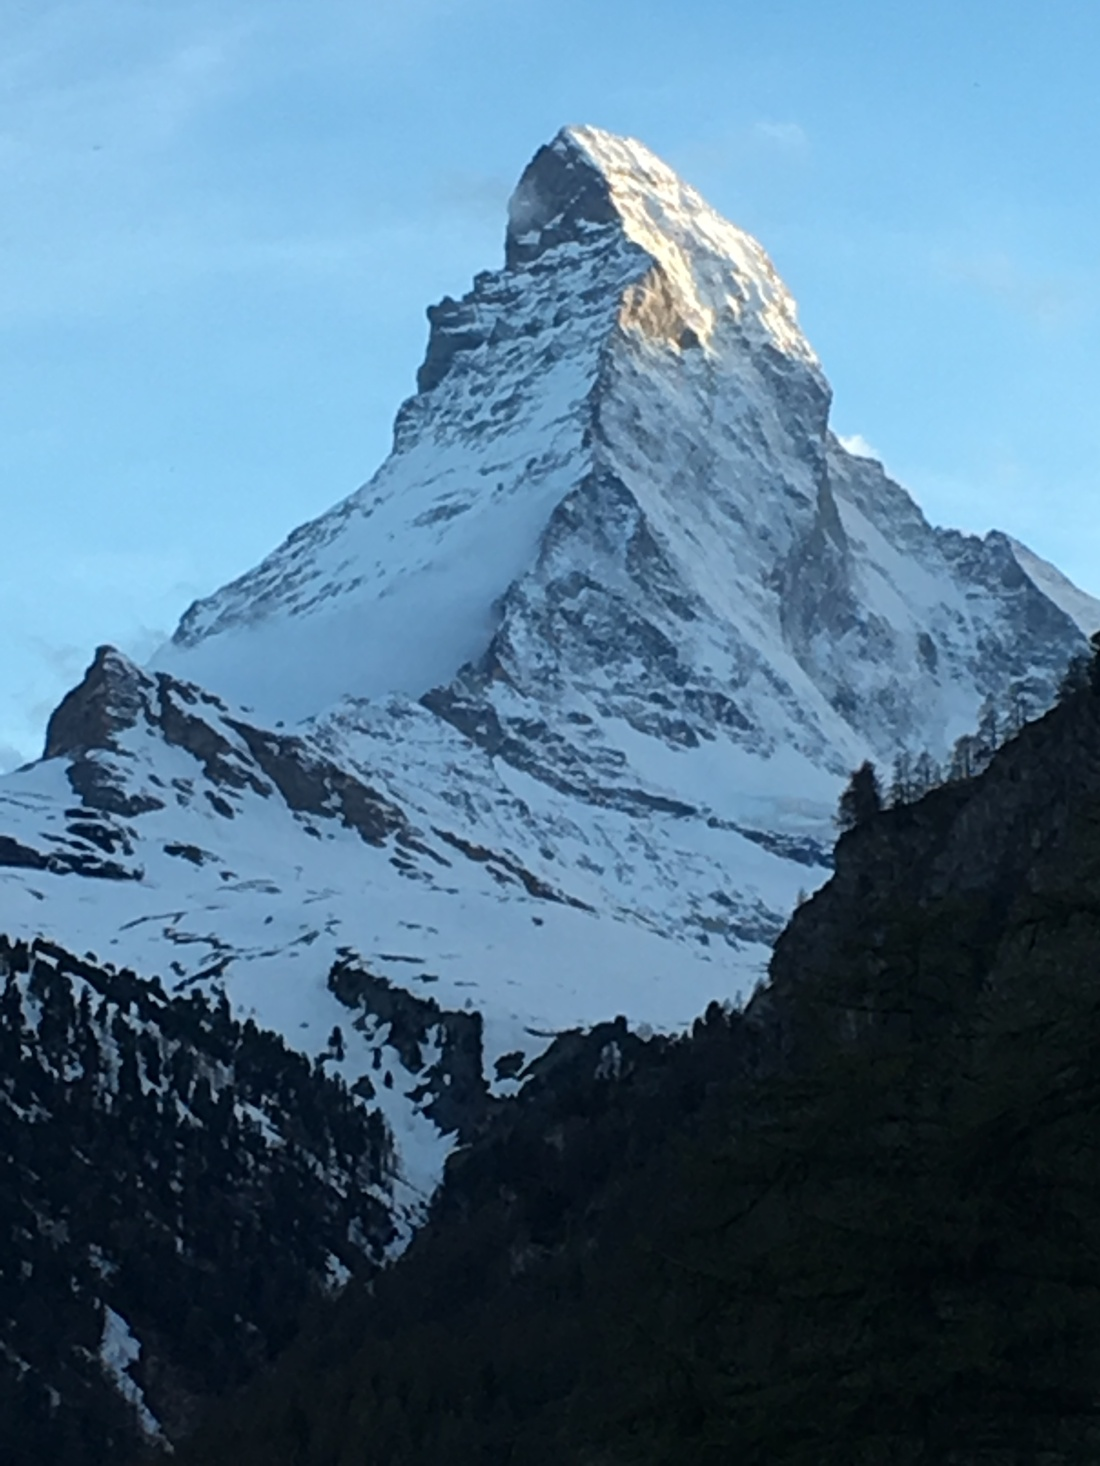 The Matterhorn. Brownell, May 2019